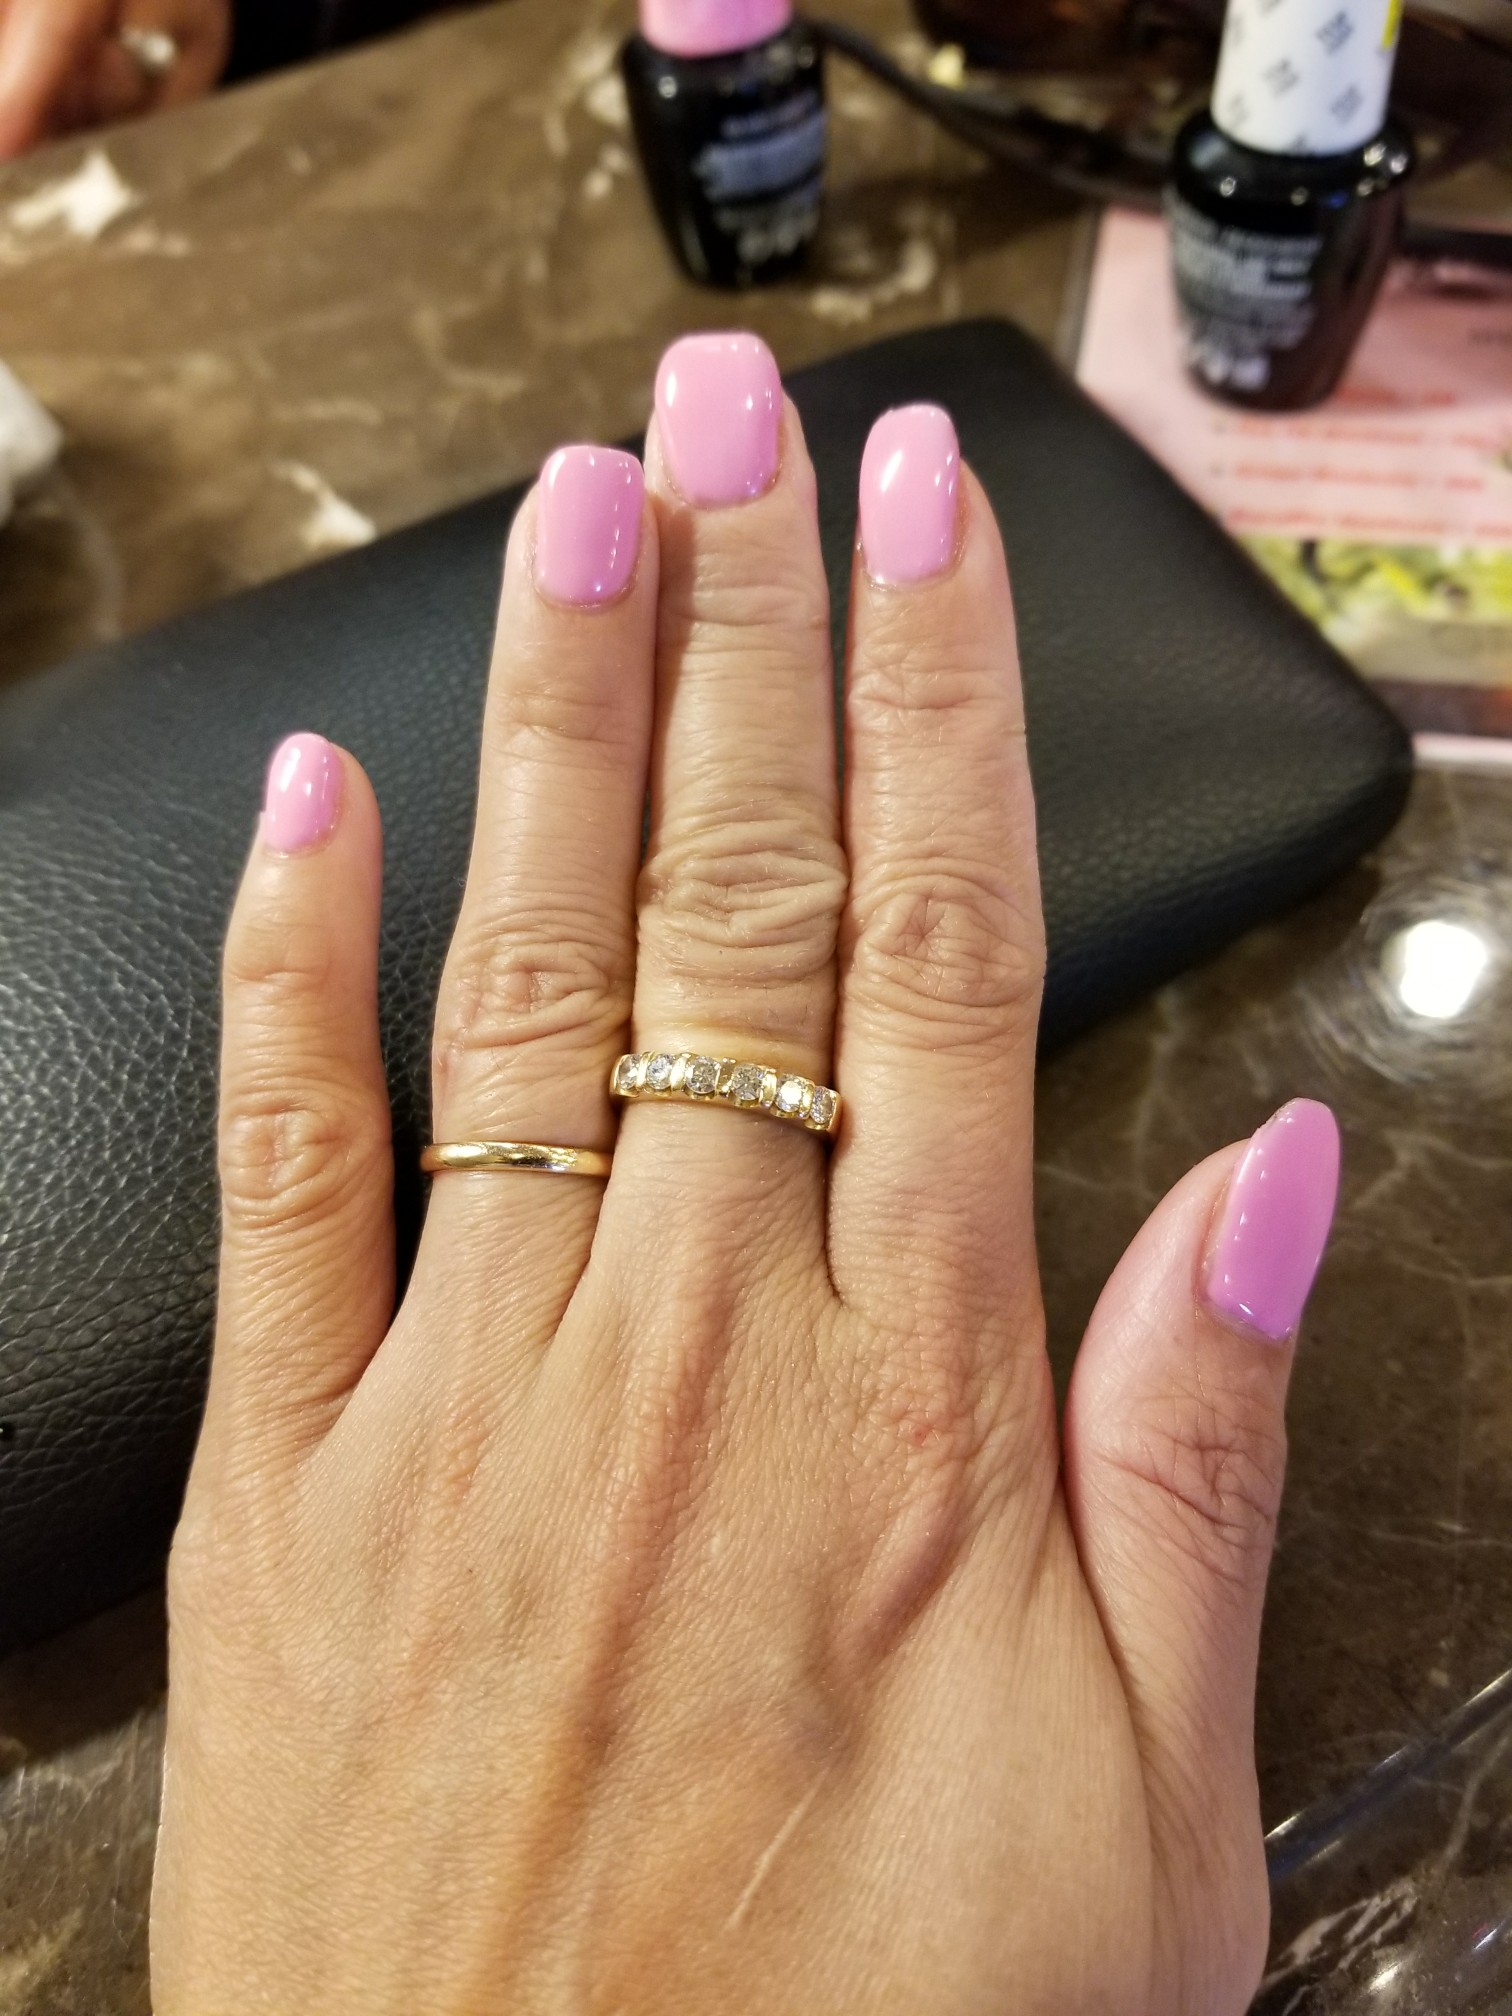 Heavenly Nails Fresno : heavenly, nails, fresno, Heavenly, Nails, Manicure, Trends